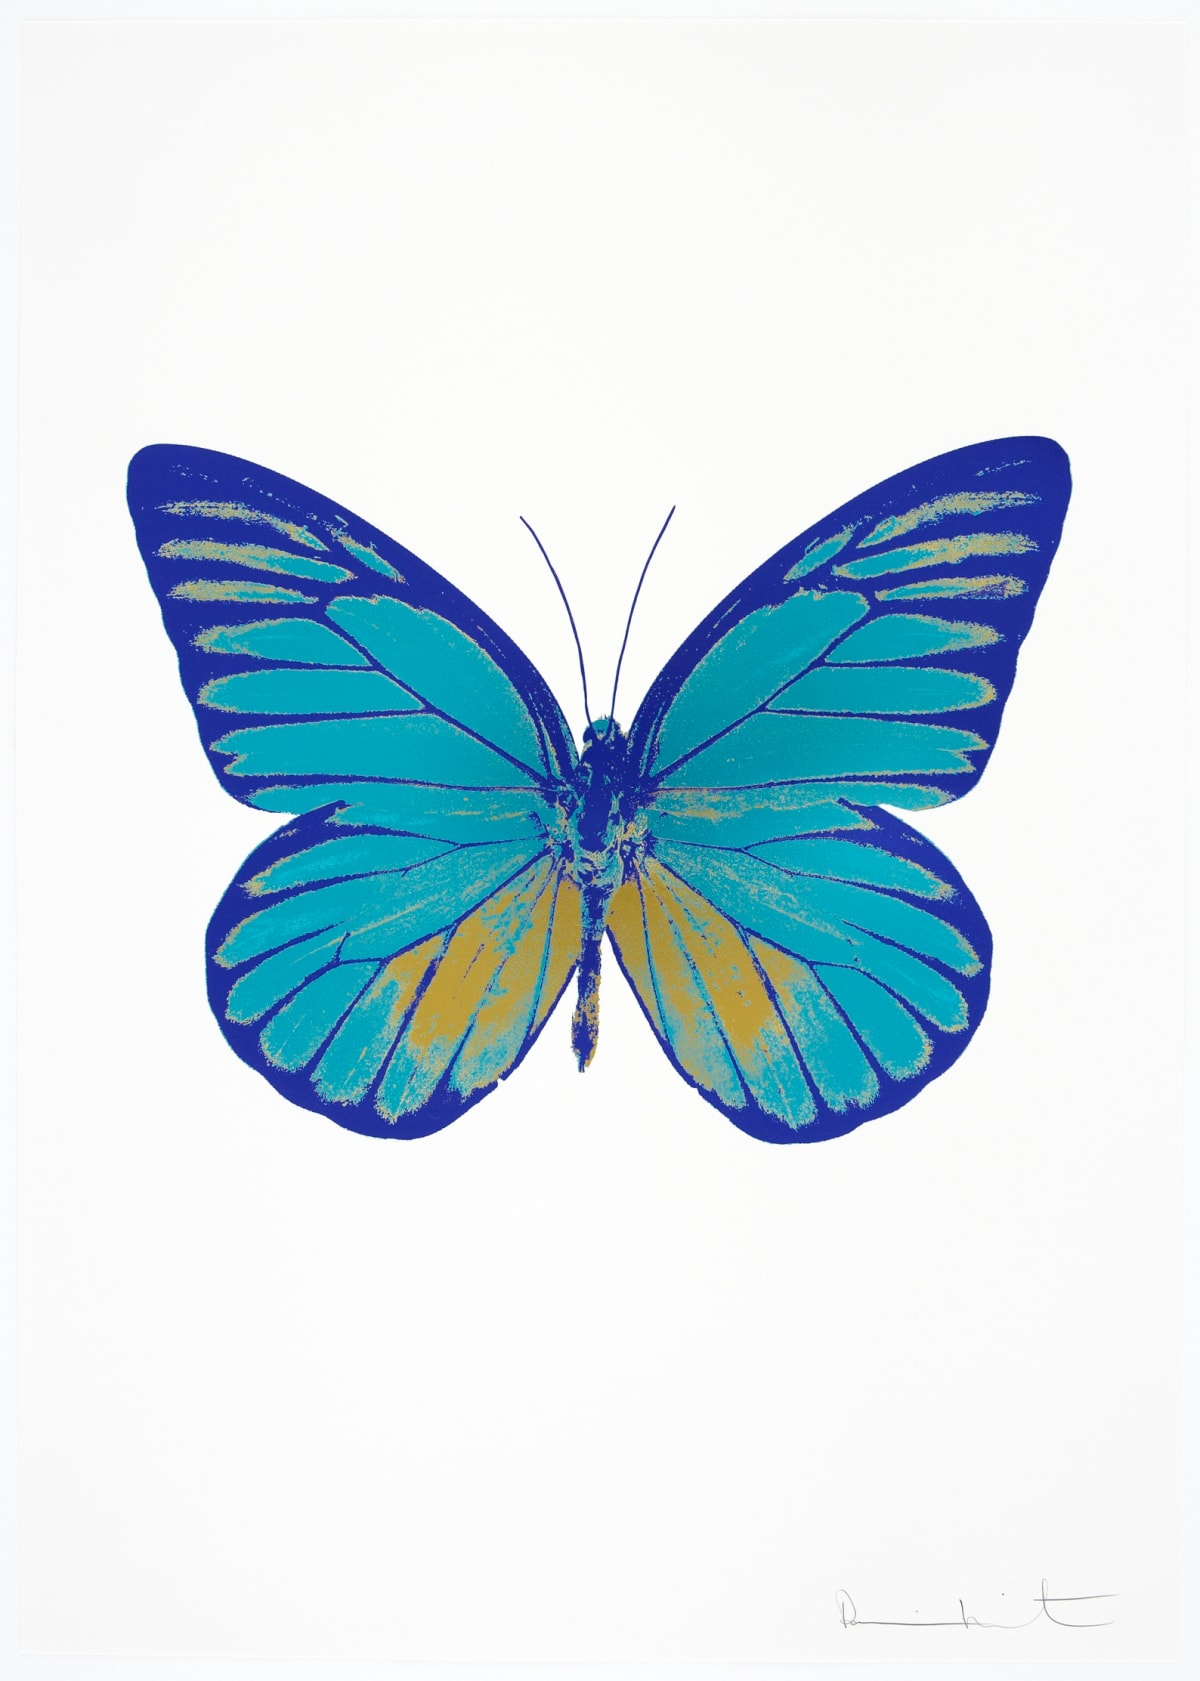 Damien Hirst The Souls I - Topaz/Oriental Gold/Westminster Blue, 2010 3 colour foil block on 300gsm Arches 88 archival paper. Signed and numbered. Published by Paul Stolper and Other Criteria 72 x 51cm OC7754 / 659-17 Edition of 15